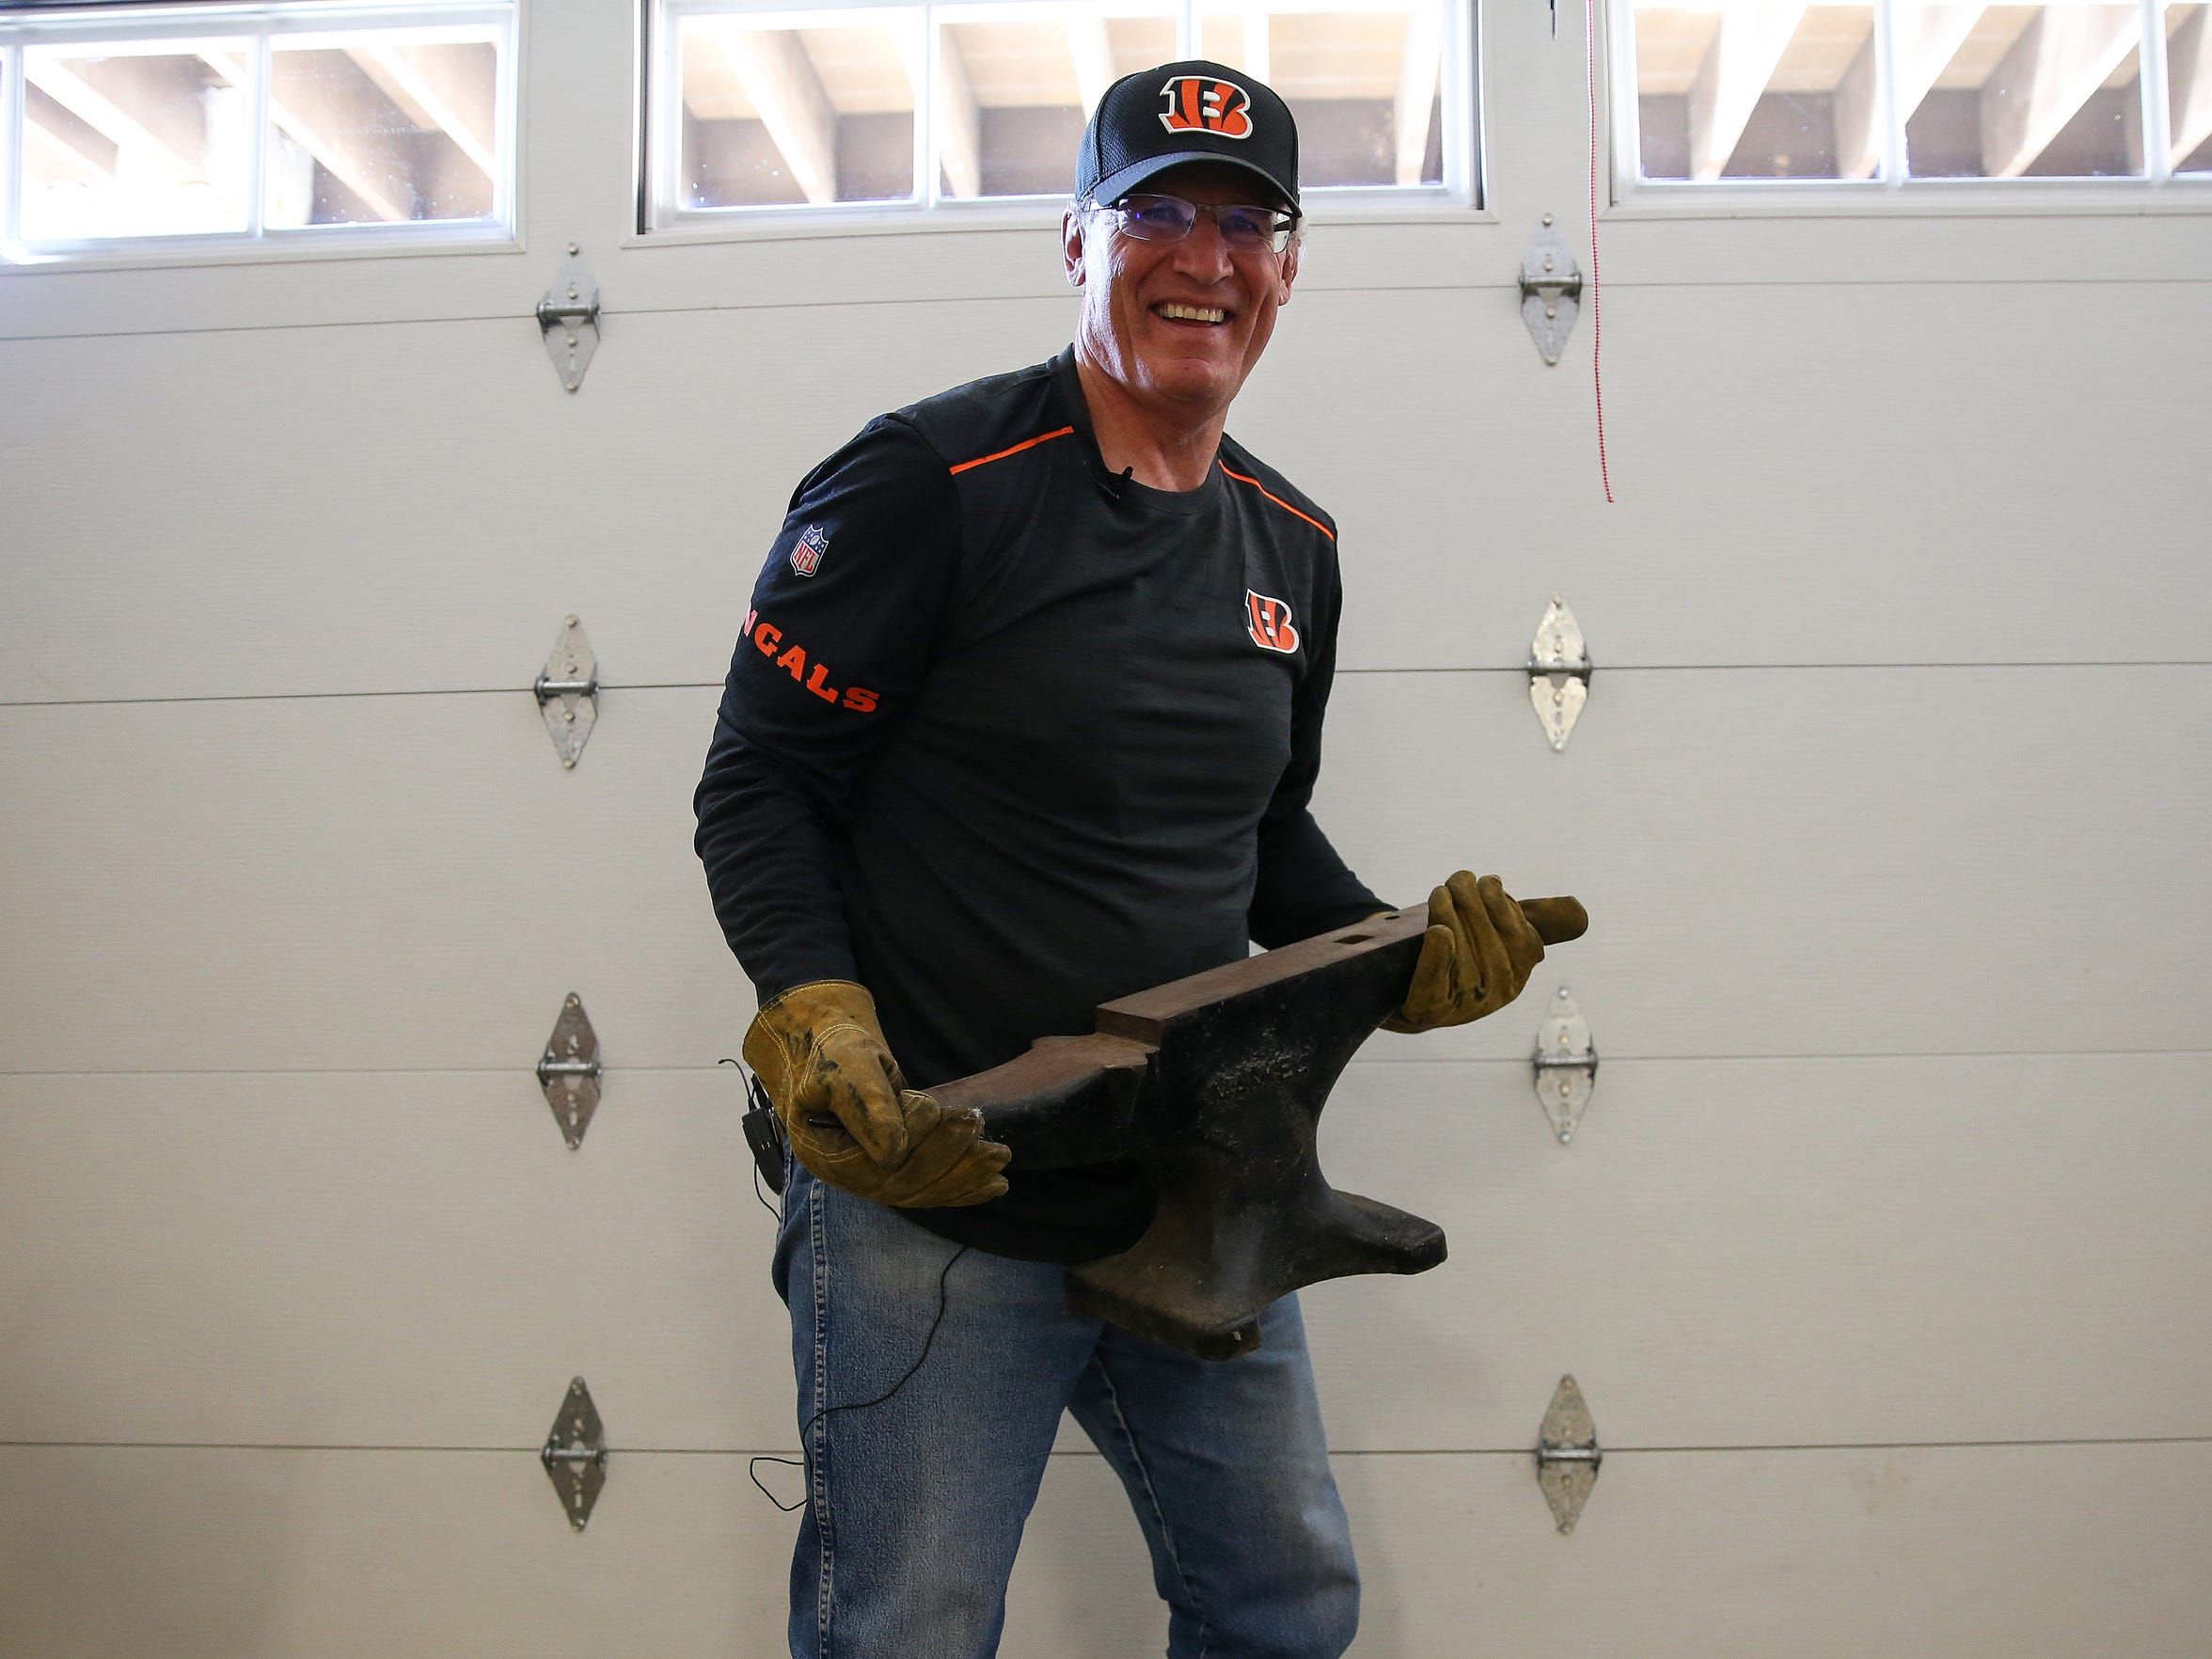 Former Cincinnati Bengals defensive tackle Tim Krumrie, pictured at his home in Steamboat Springs, Colorado, still has the anvil he used for strength conditioning during his playing days. He currently suffers from brain trauma but has sought treatment that says has improved his health.